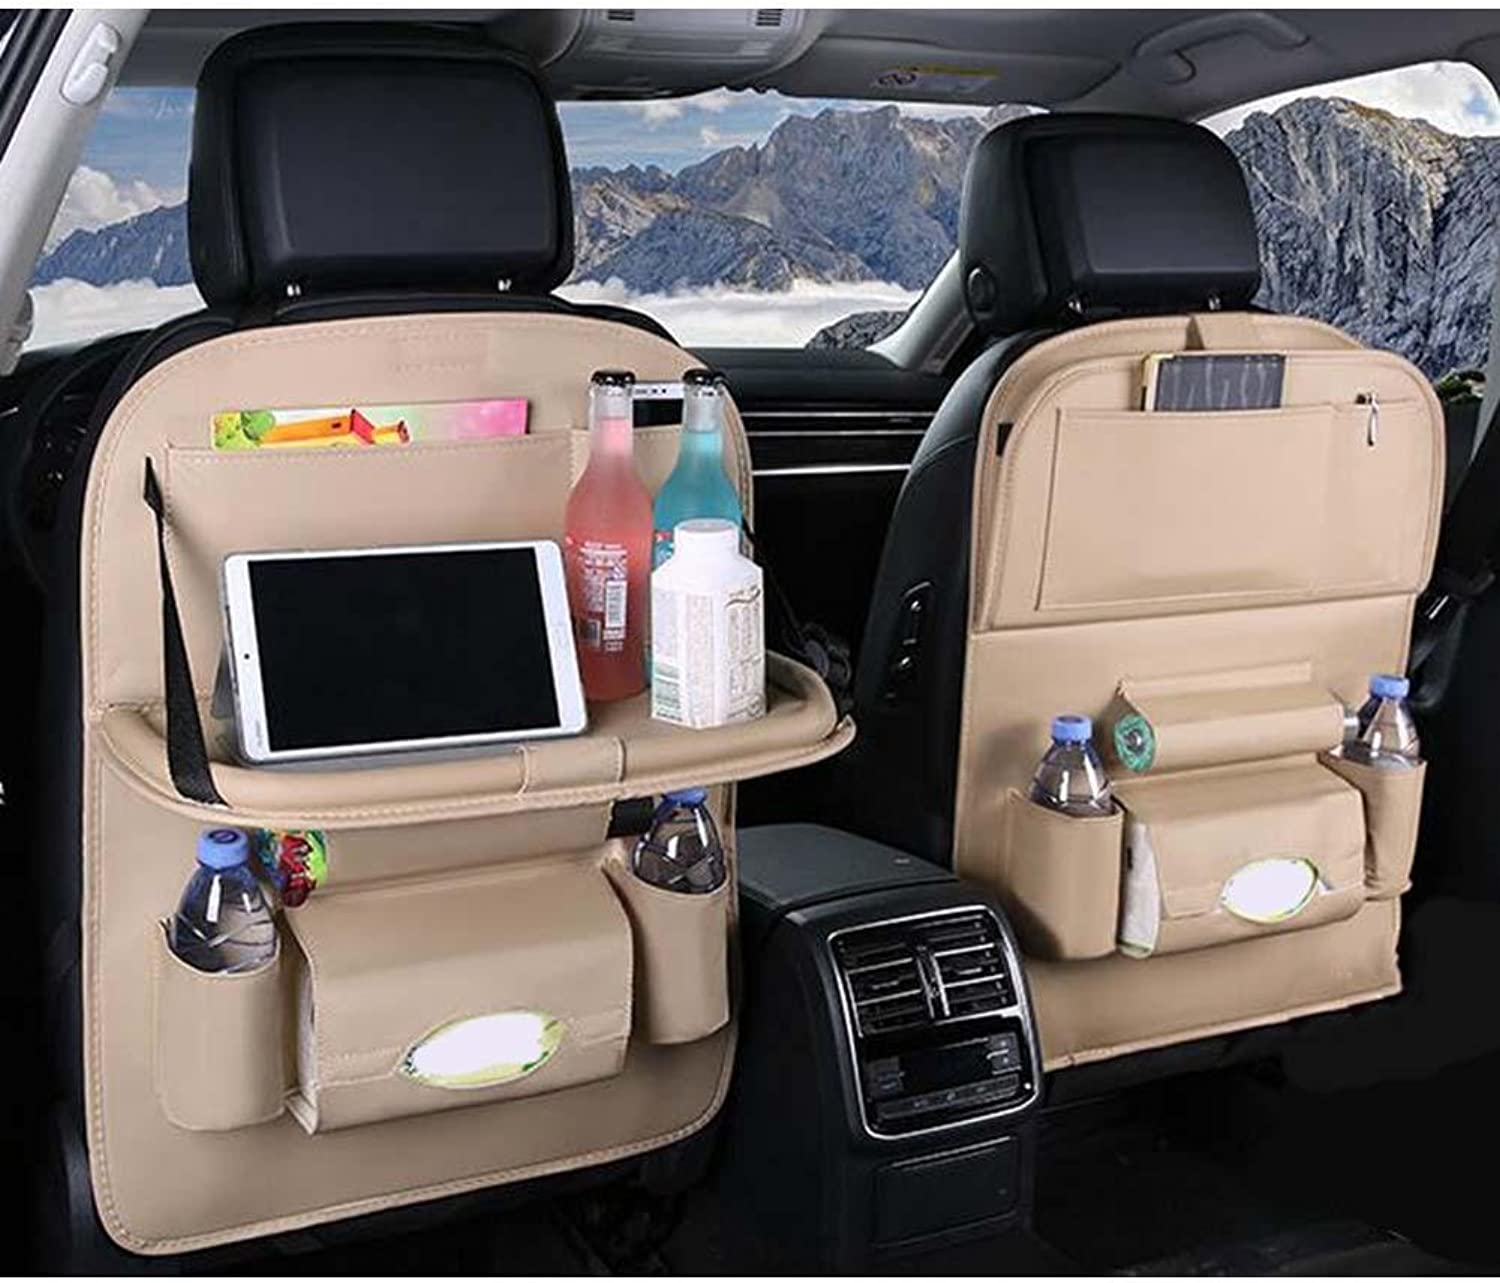 XIAOLI& 2 Pieces Car Backrest Storage Bag Hanging Bag MultiPurpose Storage Box Foldable Dining Table, Beige